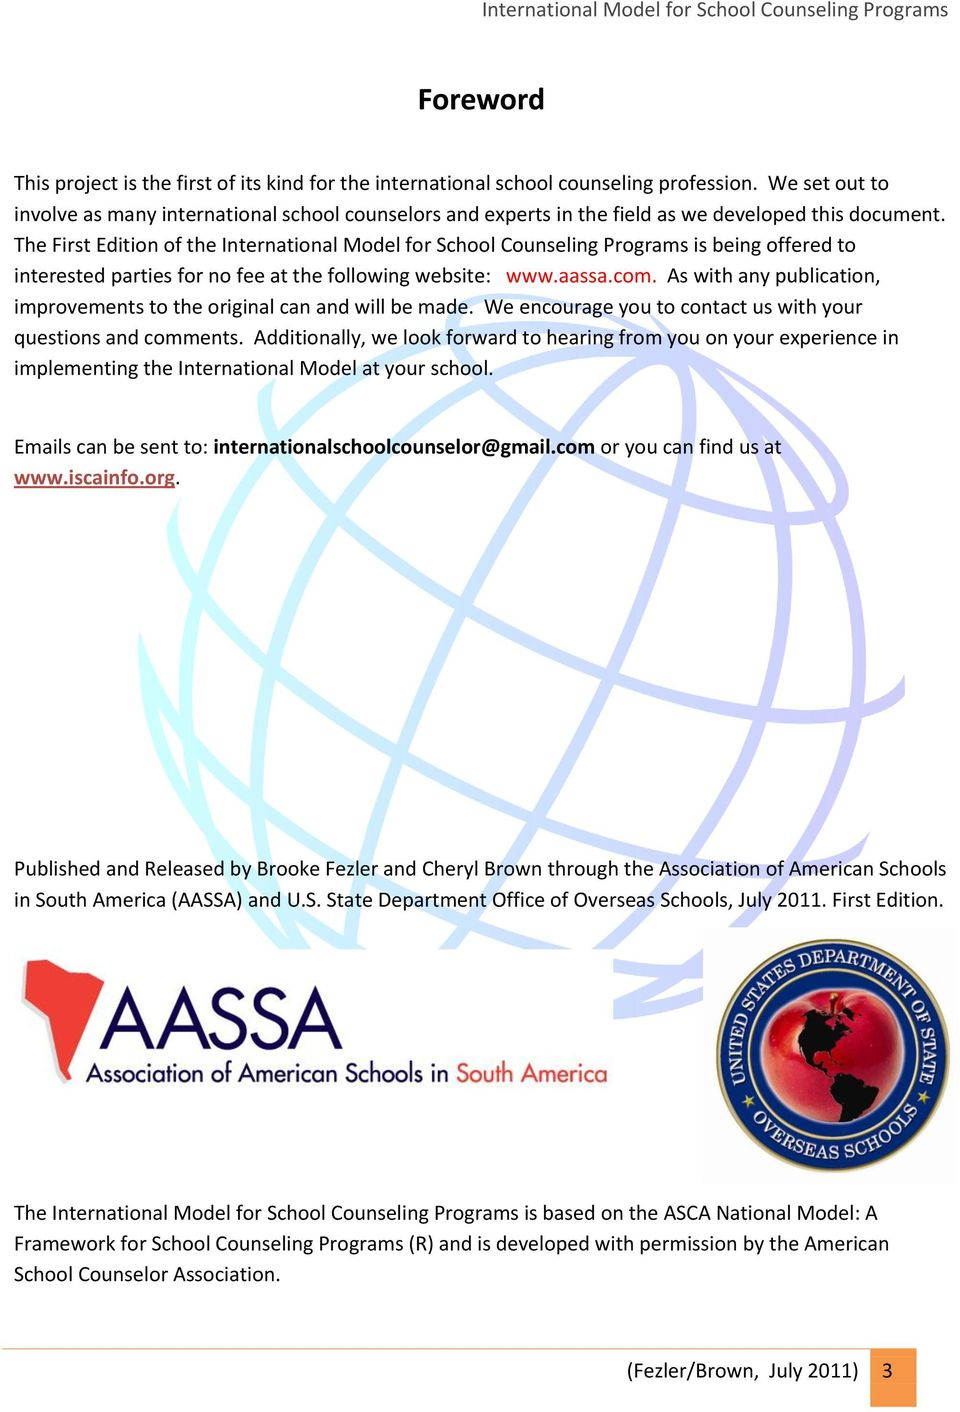 The First Edition of the International Model for School Counseling Programs is being offered to interested parties for no fee at the following website: www.aassa.com.